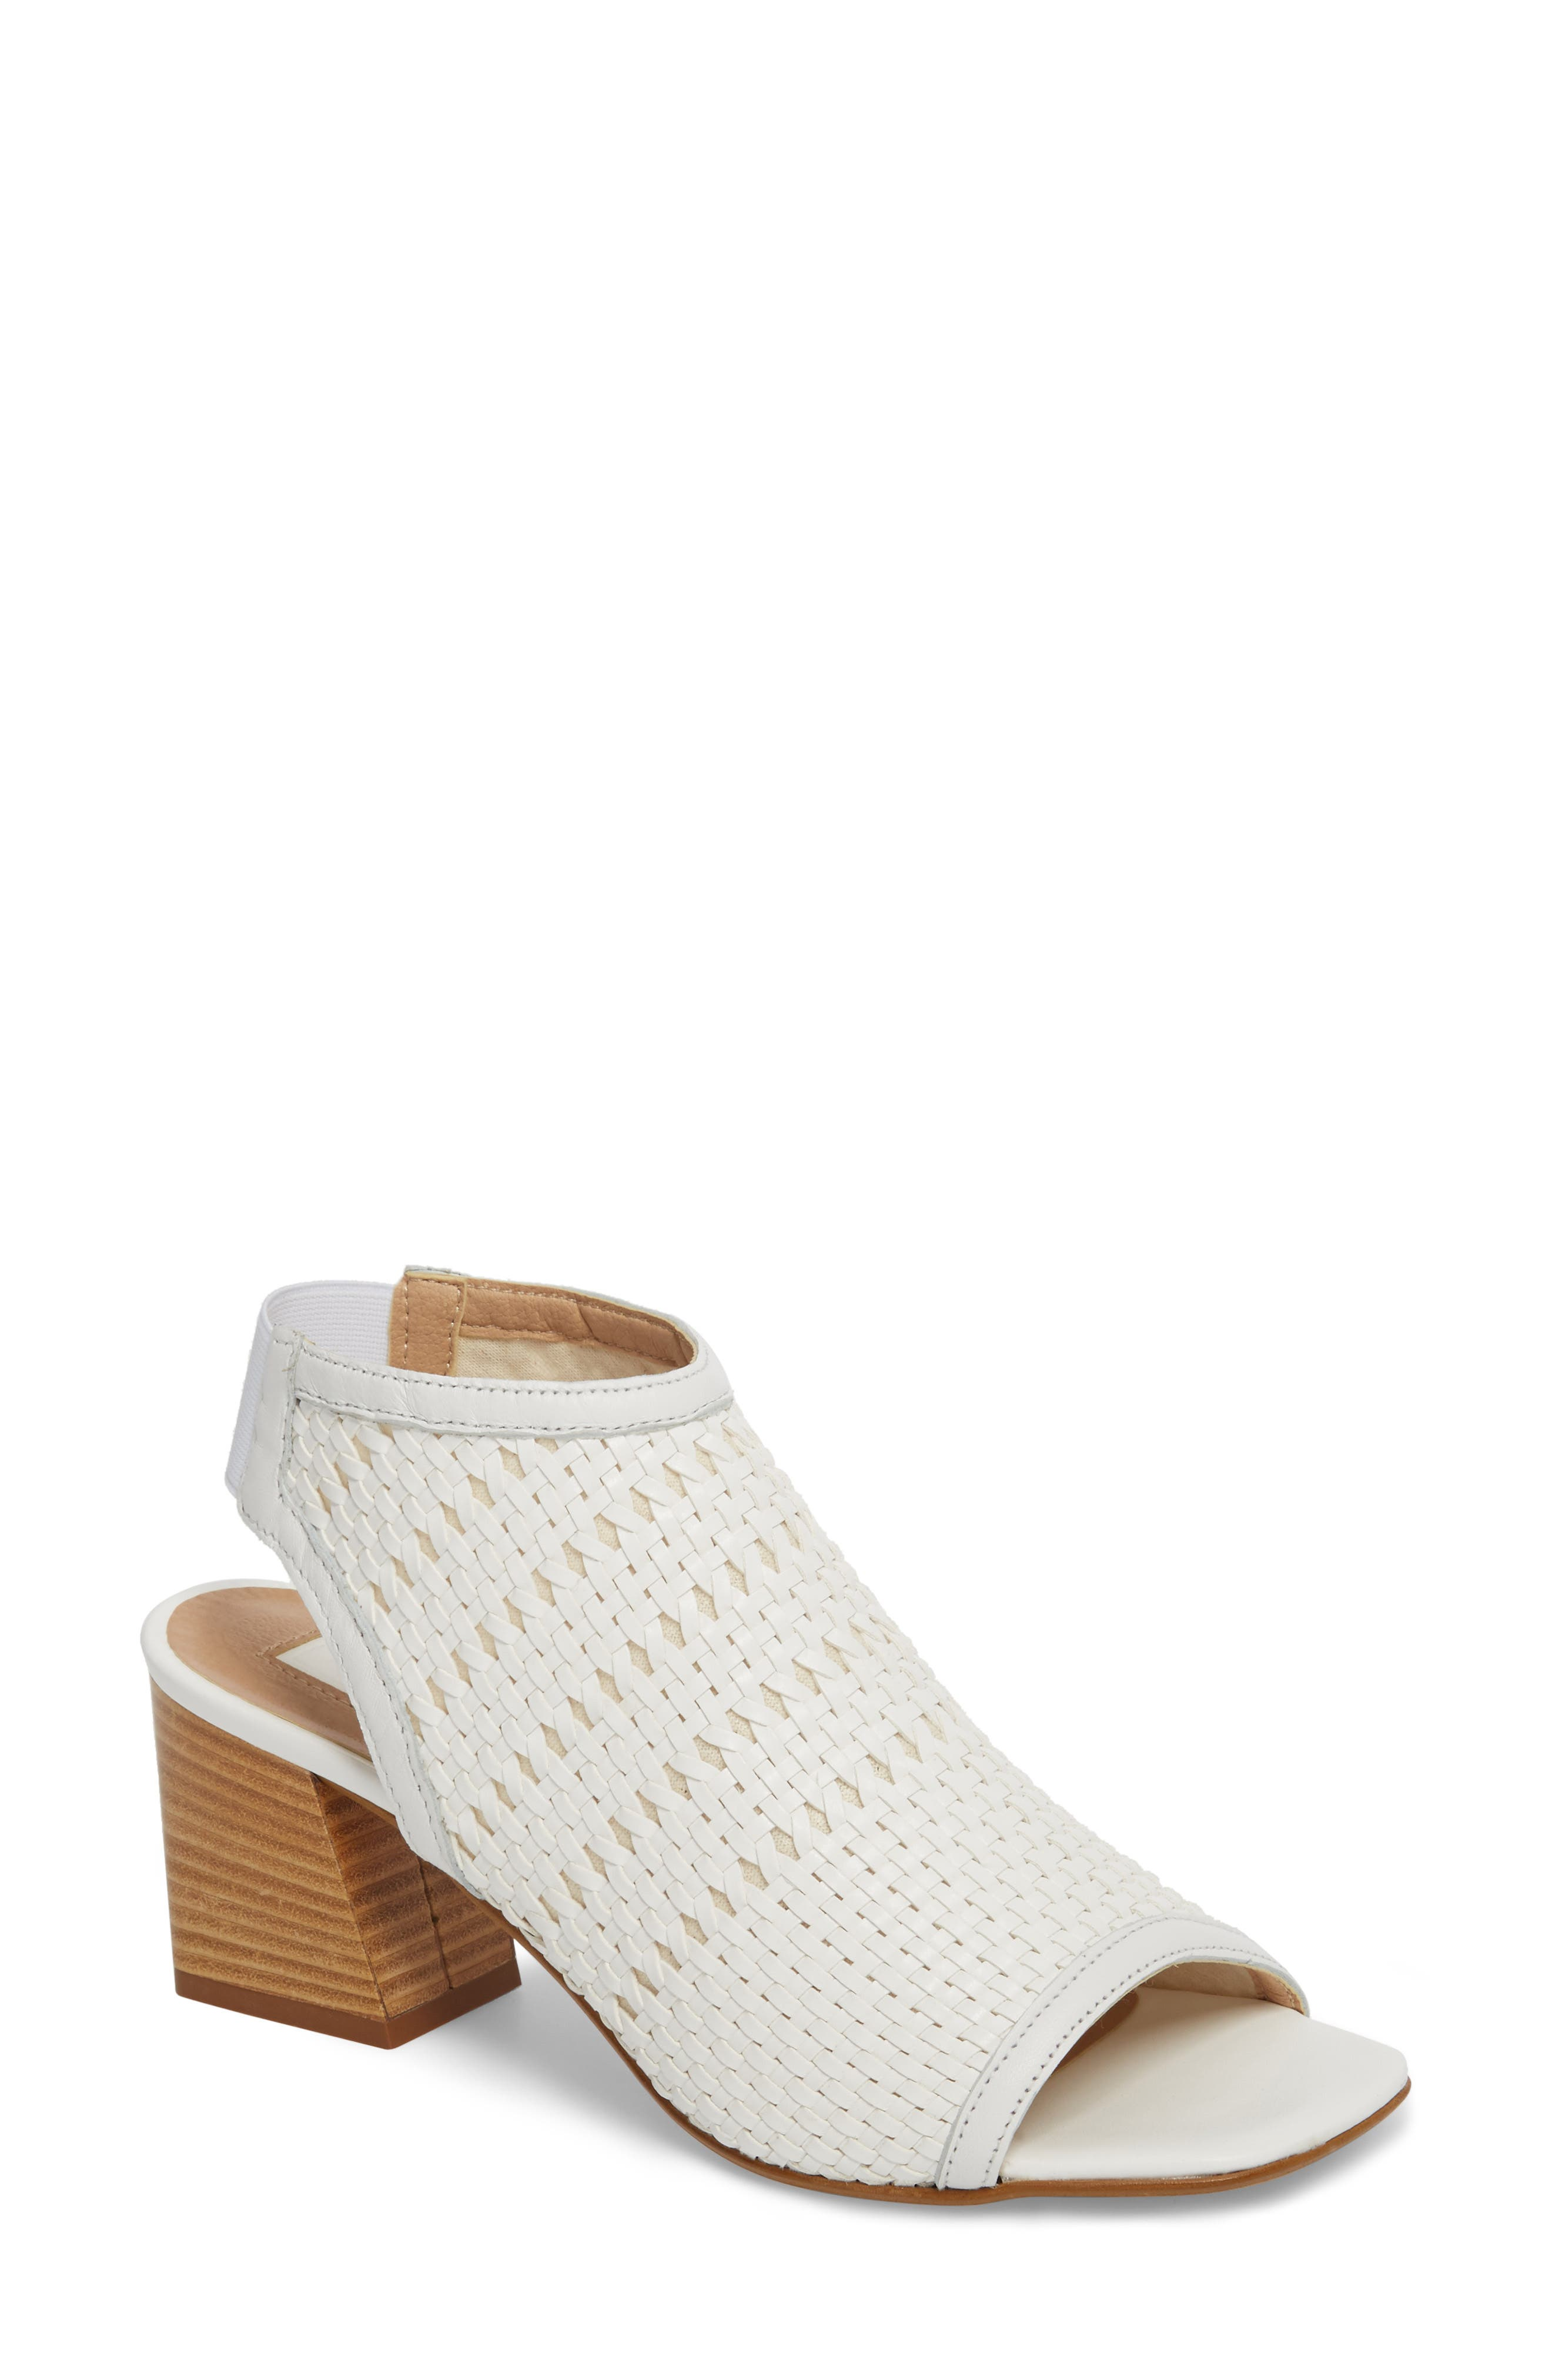 Nifty Woven Flared Heel Sandal,                         Main,                         color, White